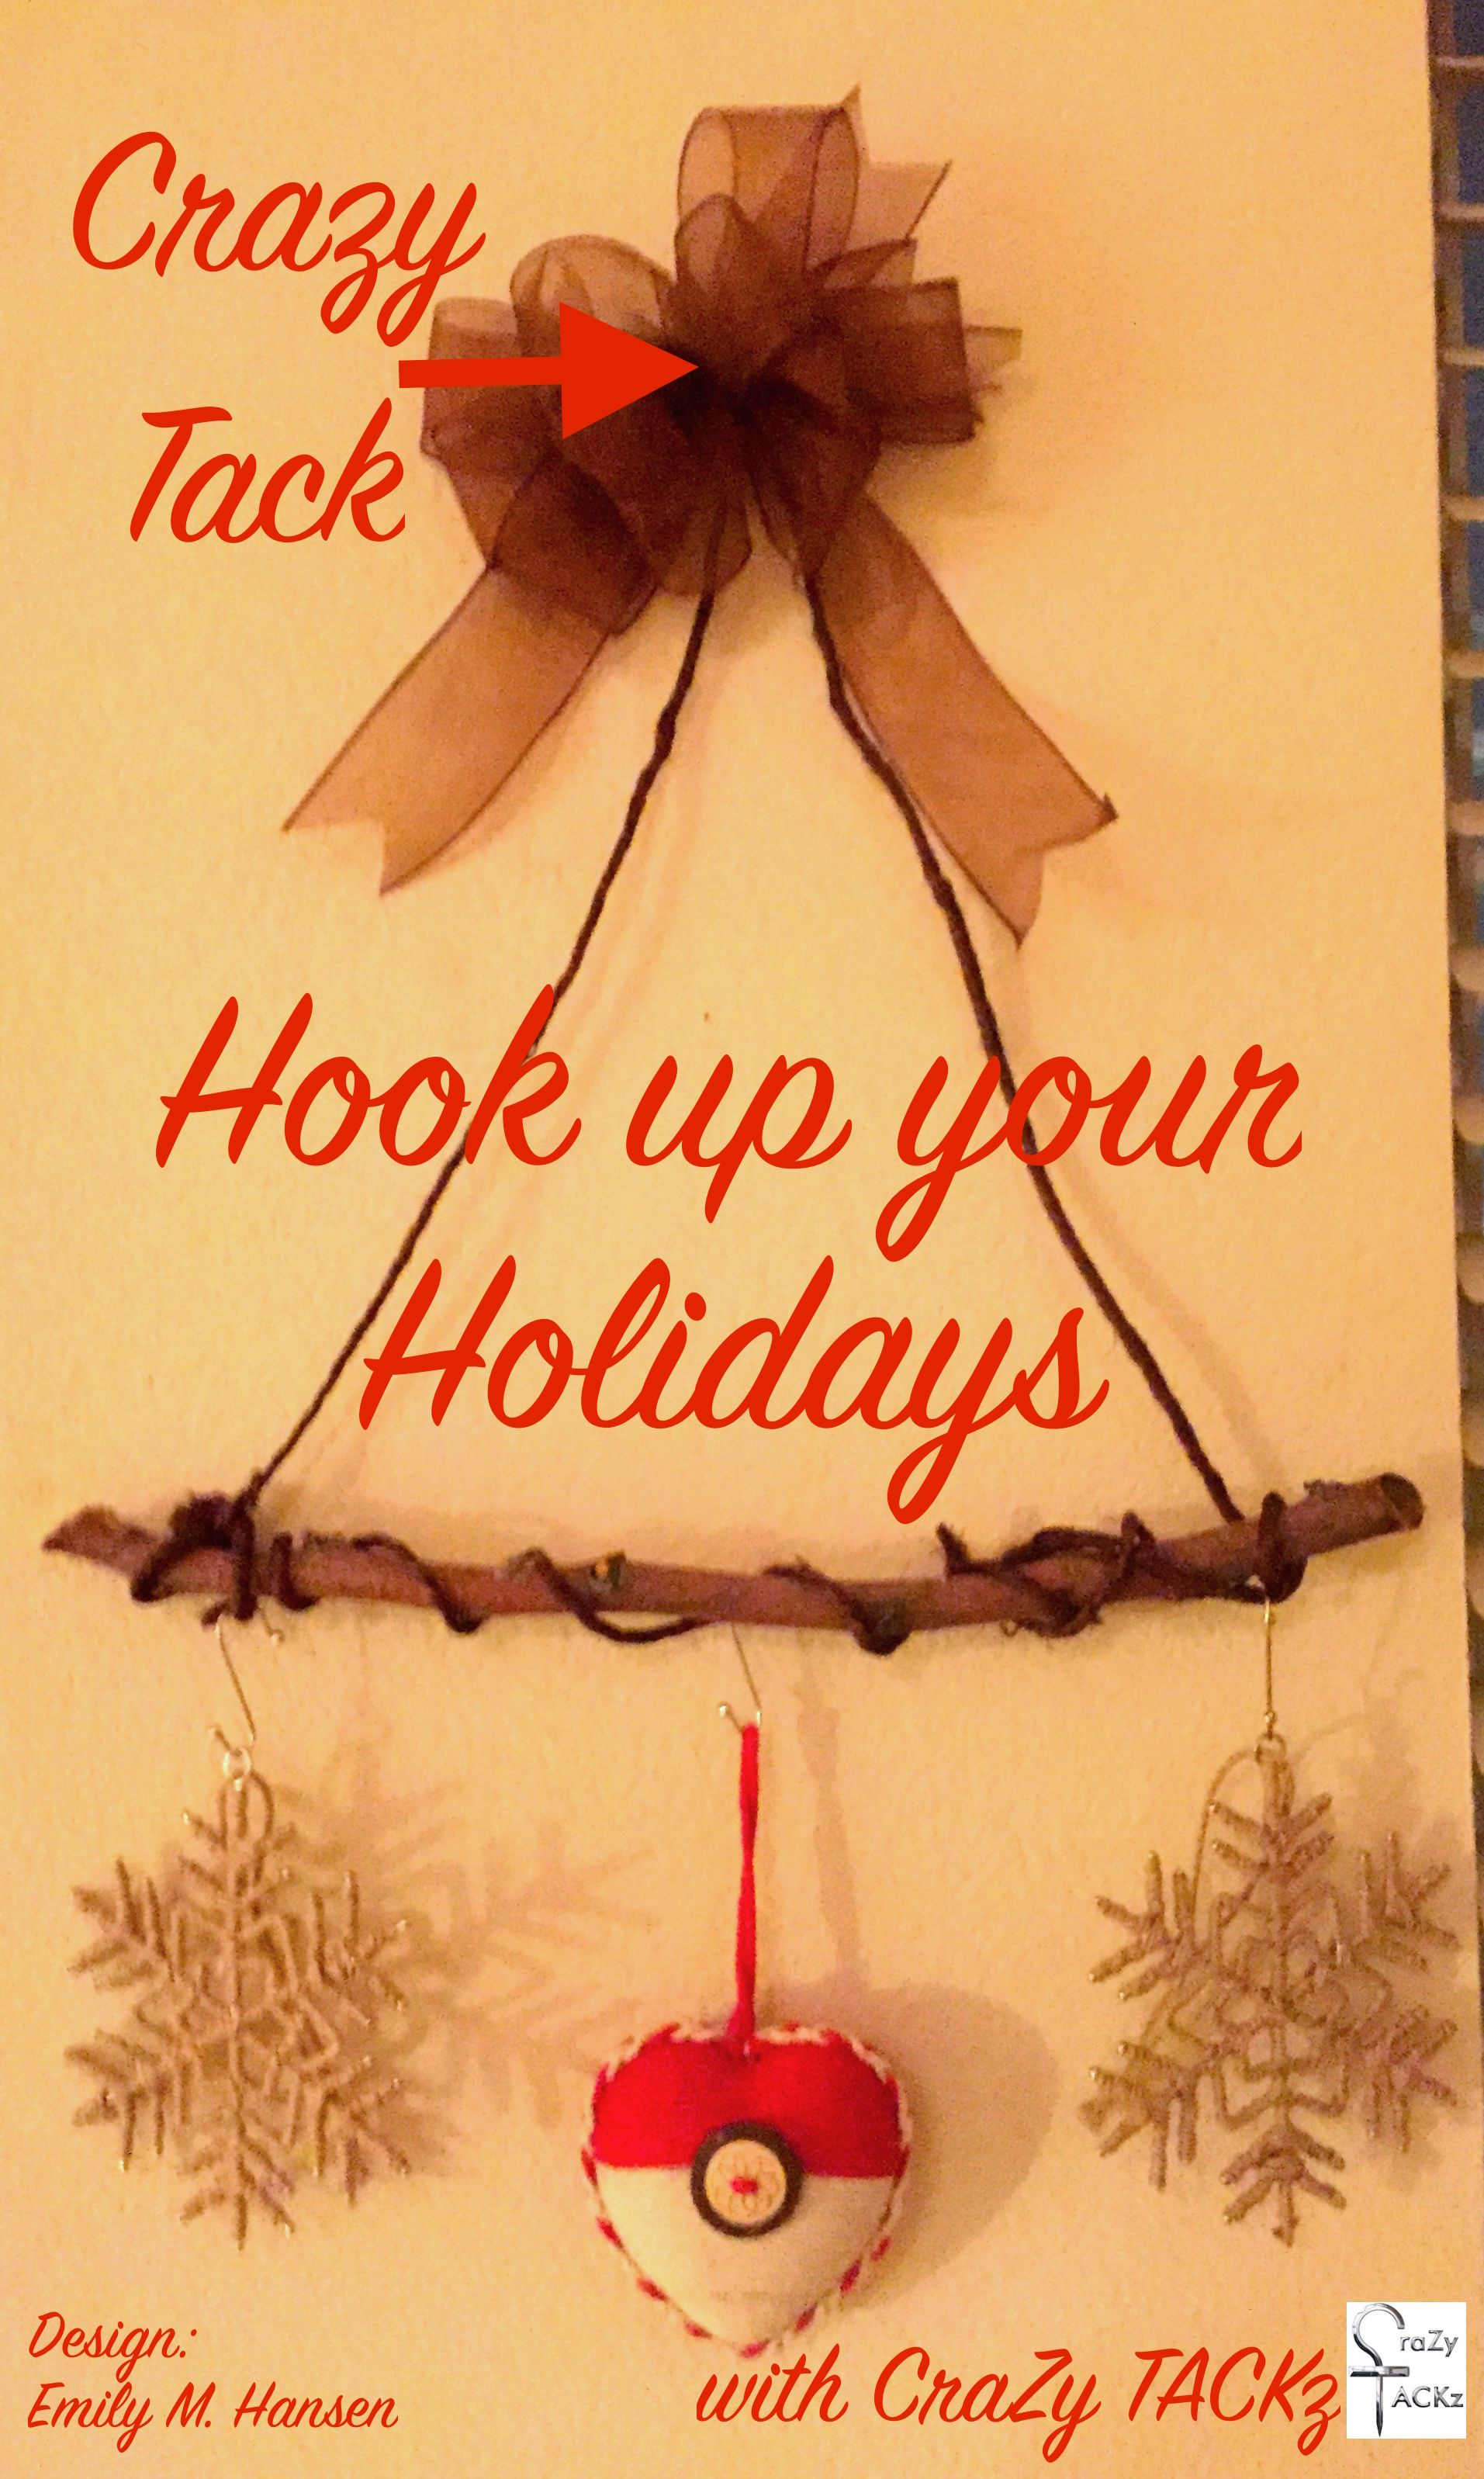 Hook up your holiday decorations with CraZy TACKz, the TACK with a ...